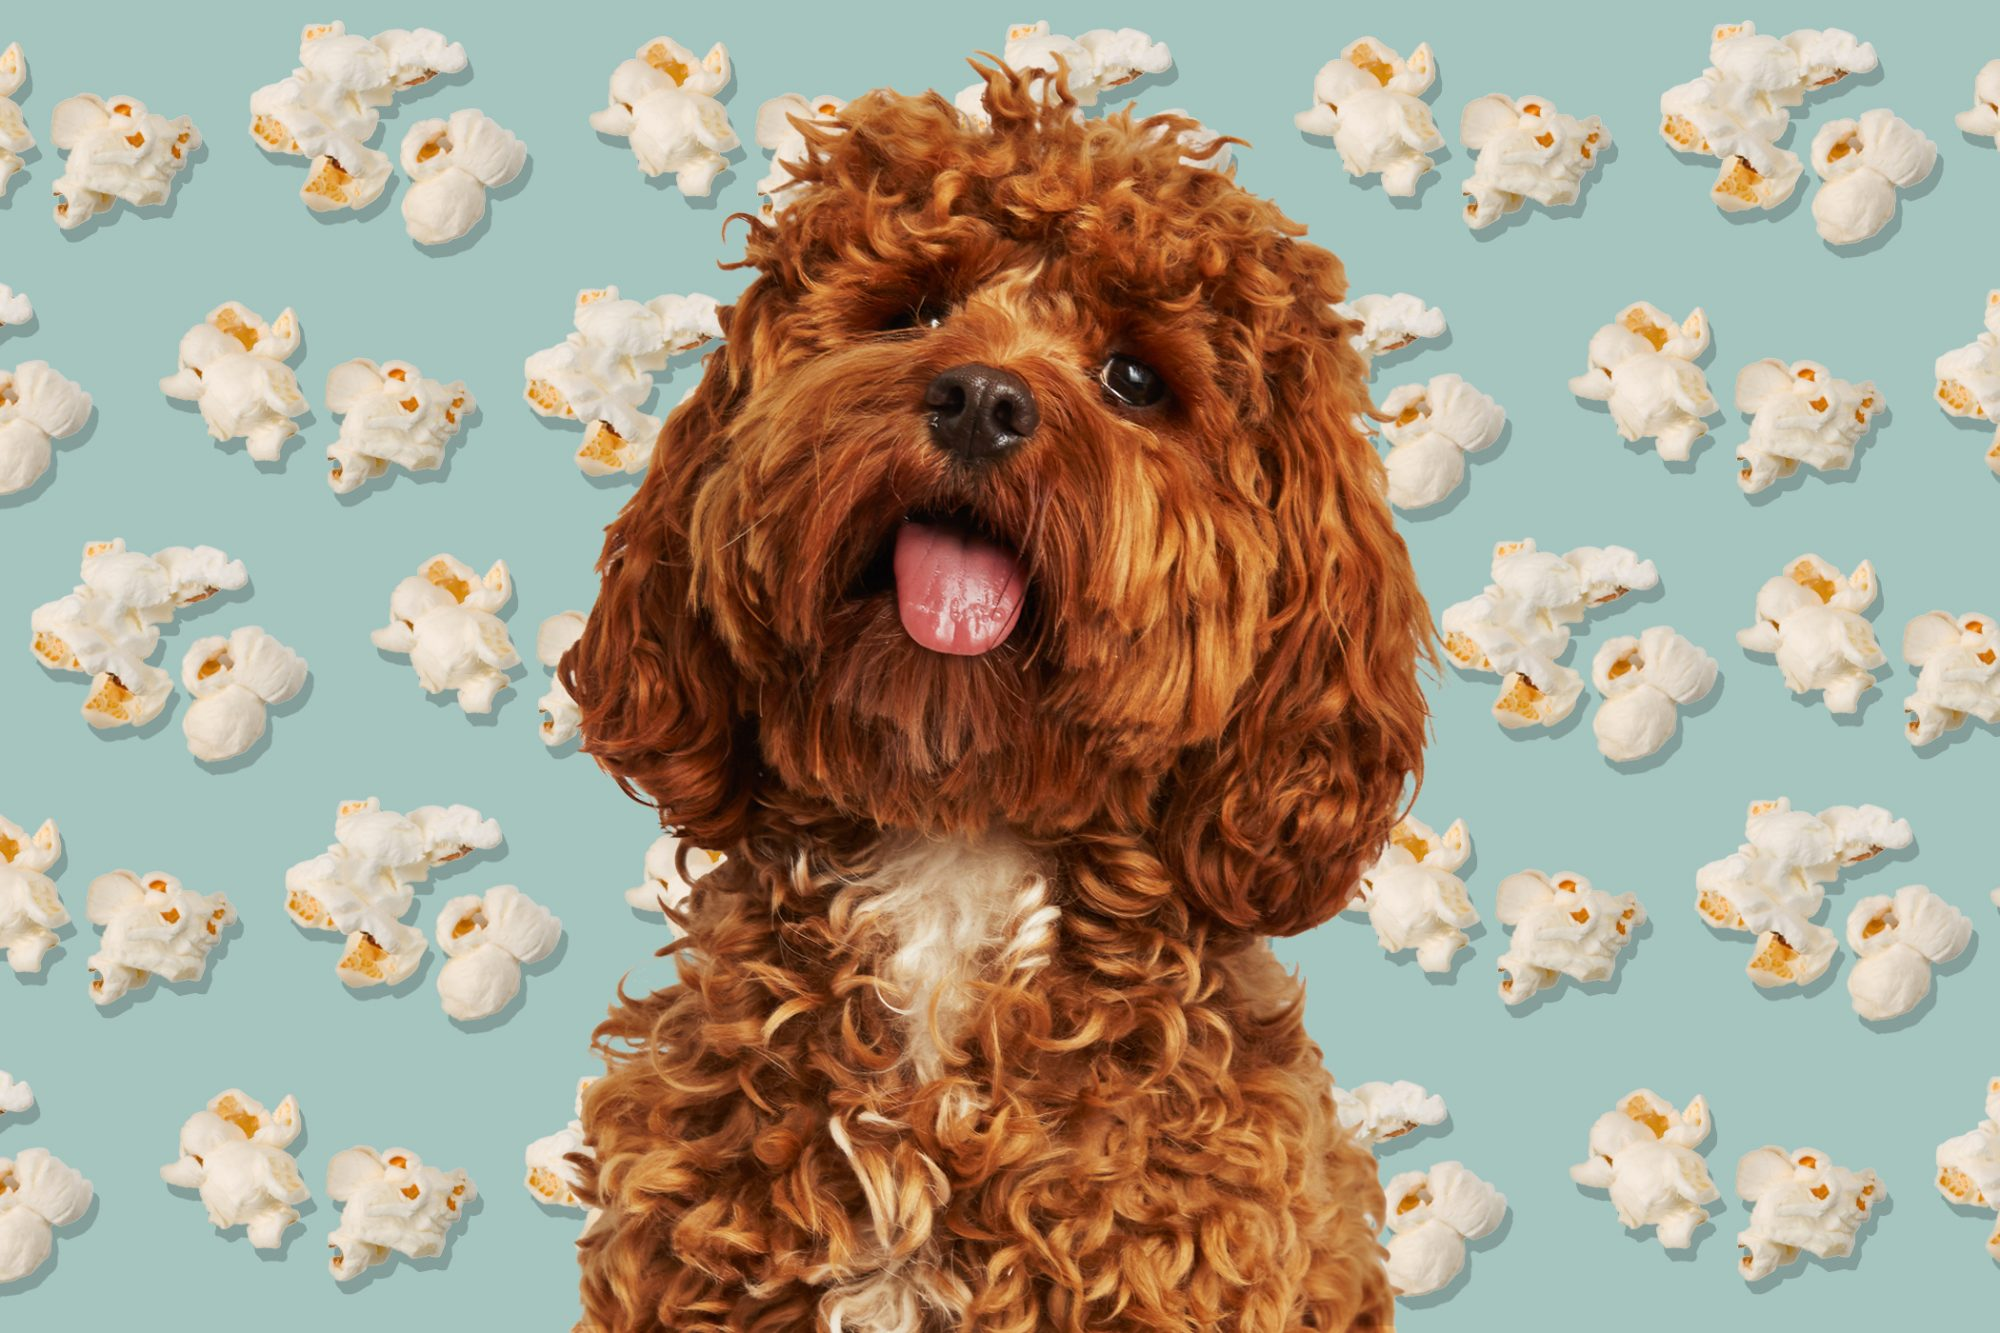 Fluffy cockapoo in front of illustrated popcorn background